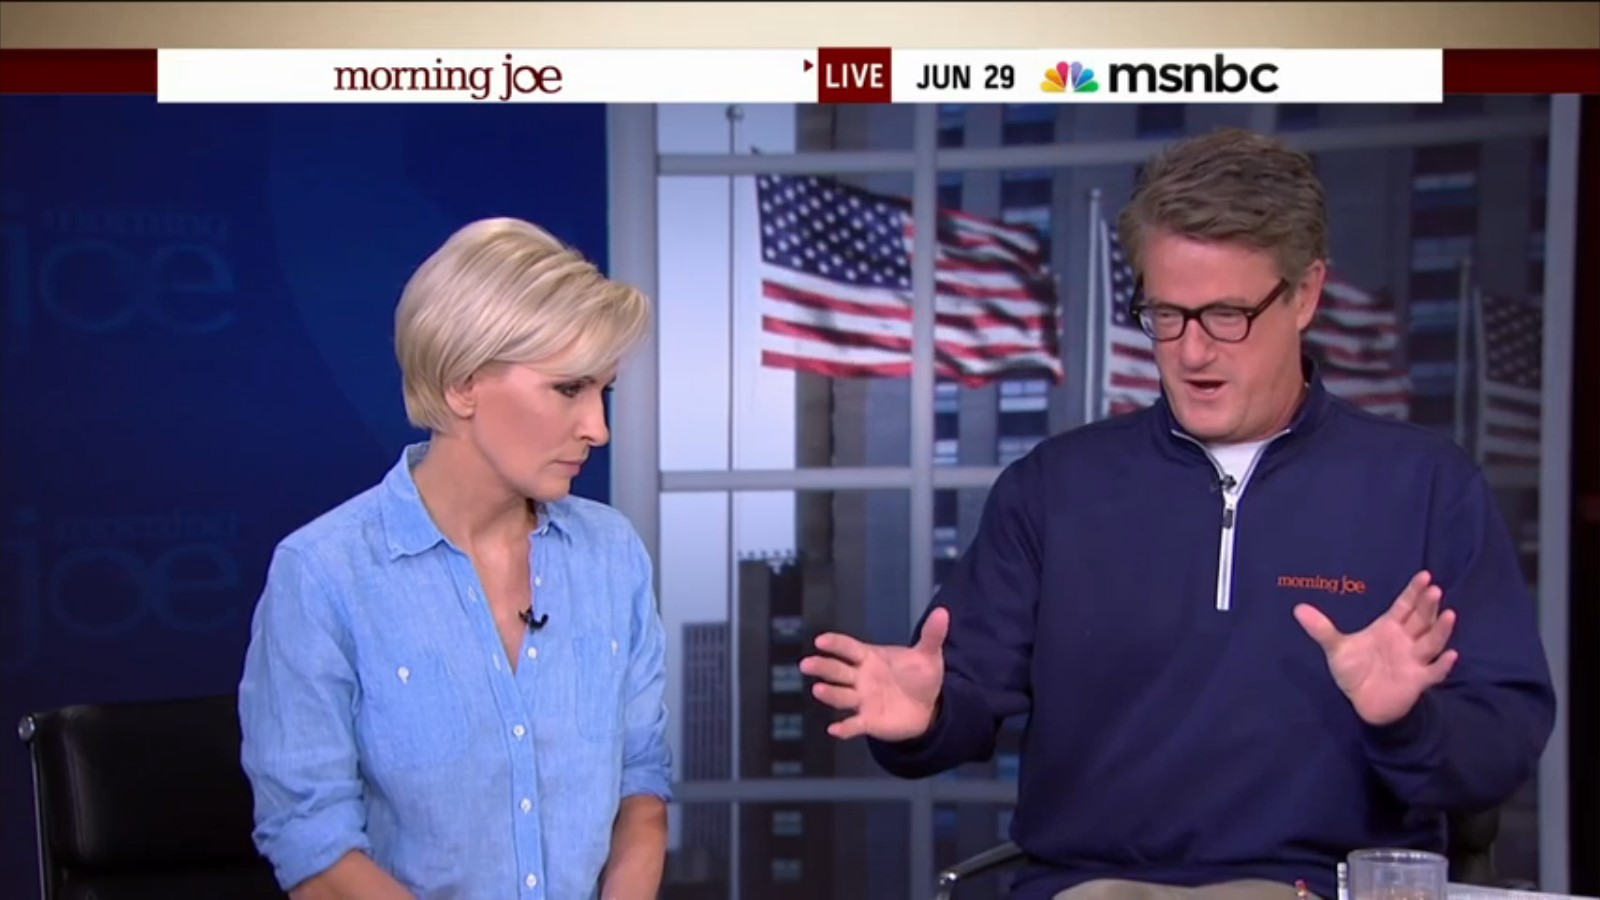 U Mad, Bro? Joe Scarborough Feels White House Shouldn't Take Credit For Same-Sex Marriage